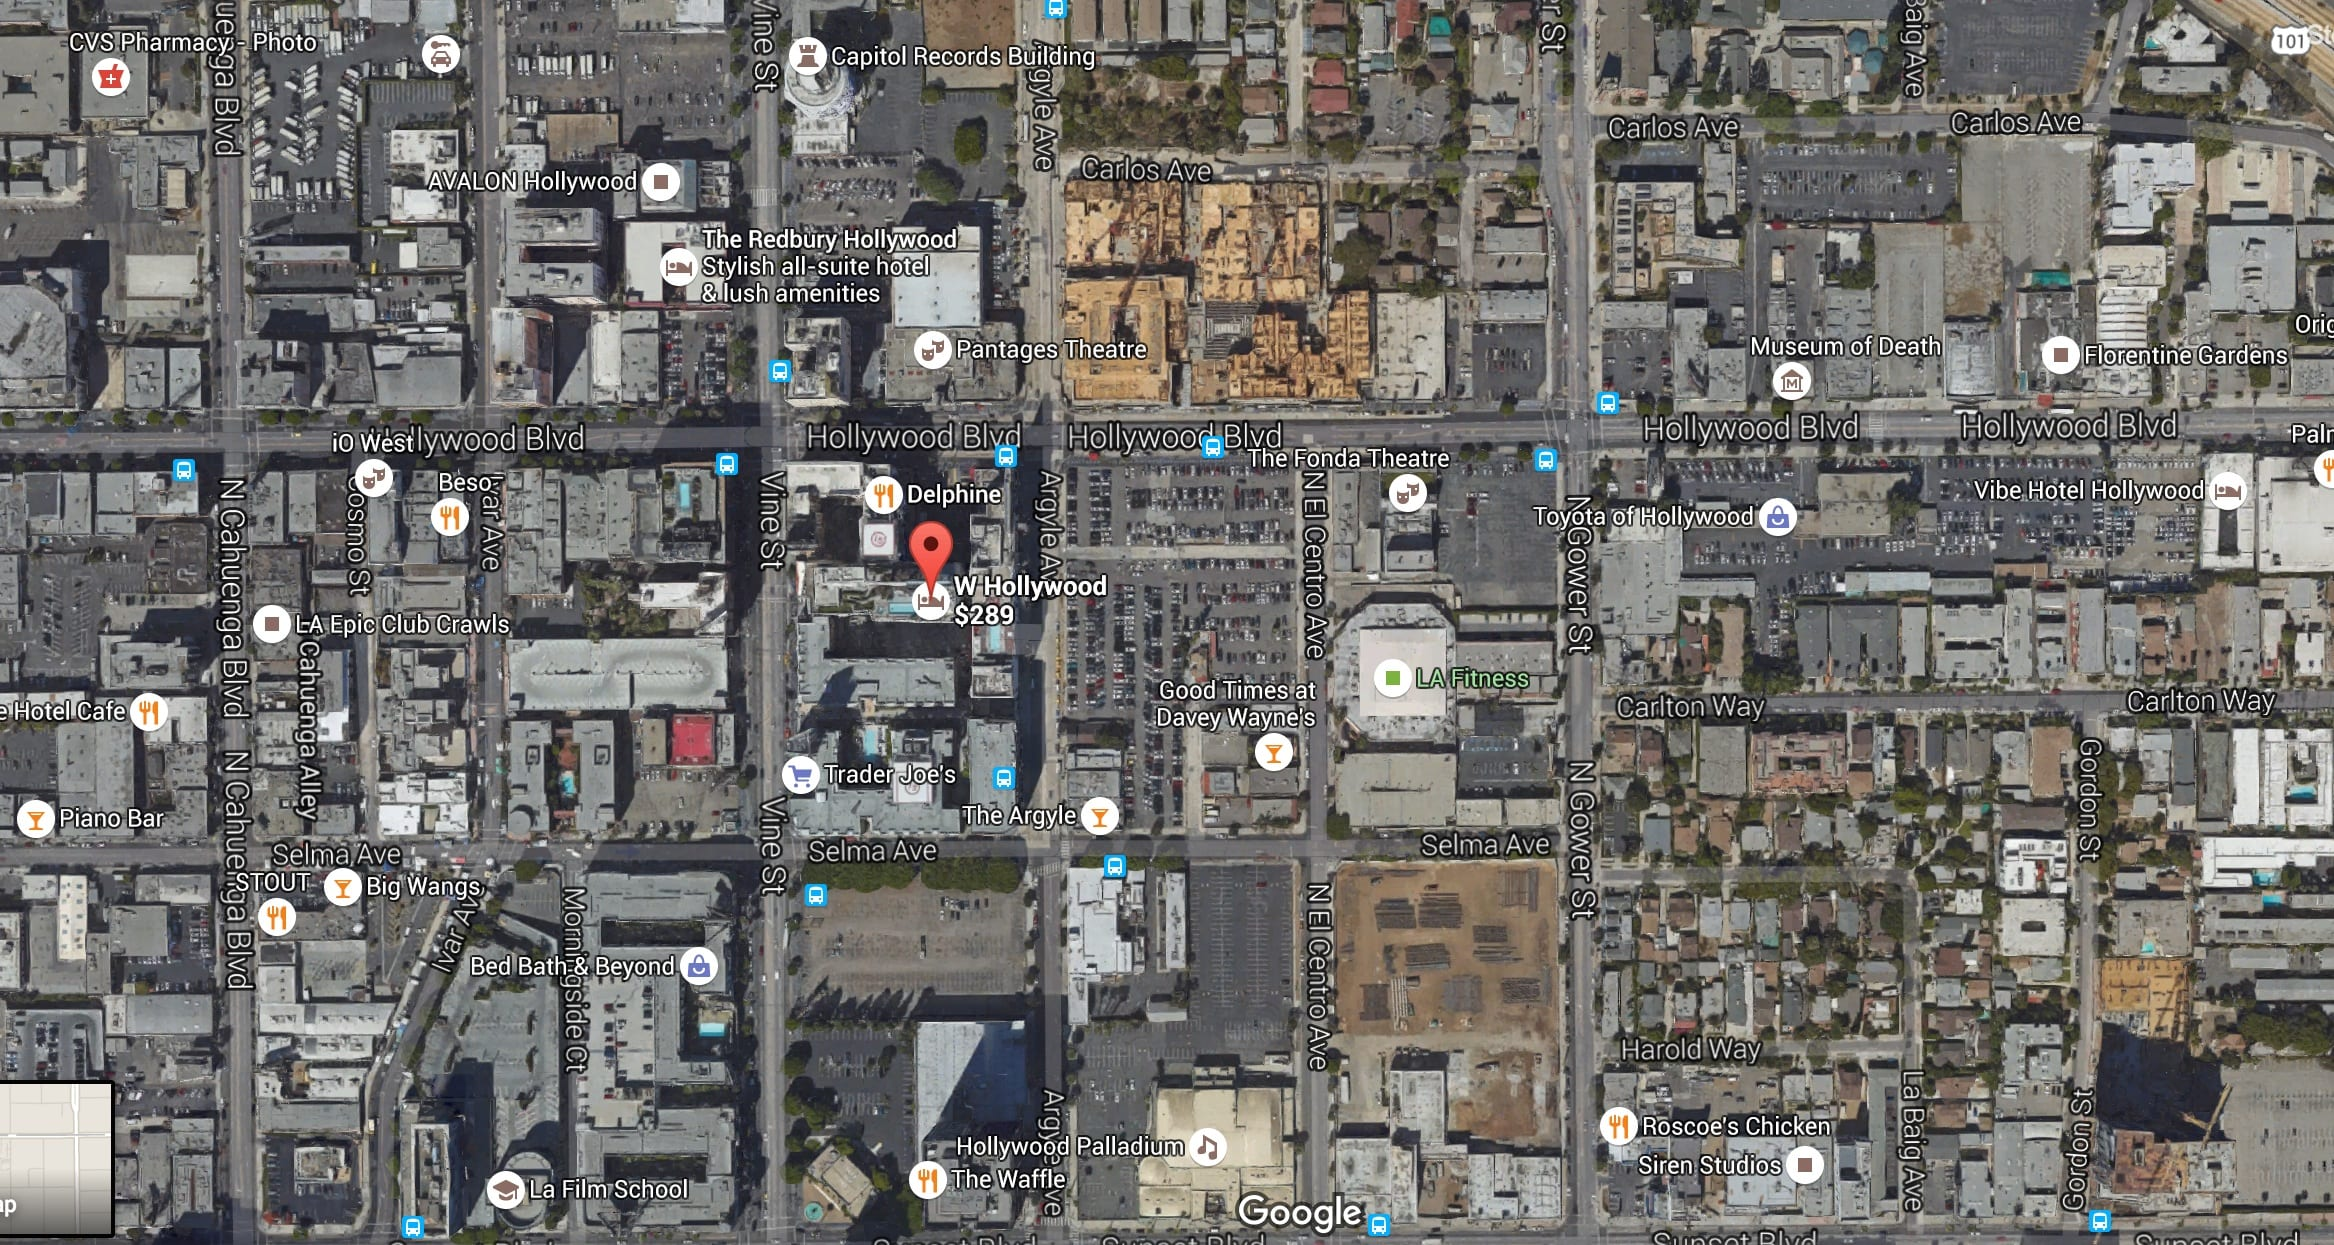 There's no shortage of parking lots on the eastern side of Hollywood, as this view courtesy of Google Maps shows.